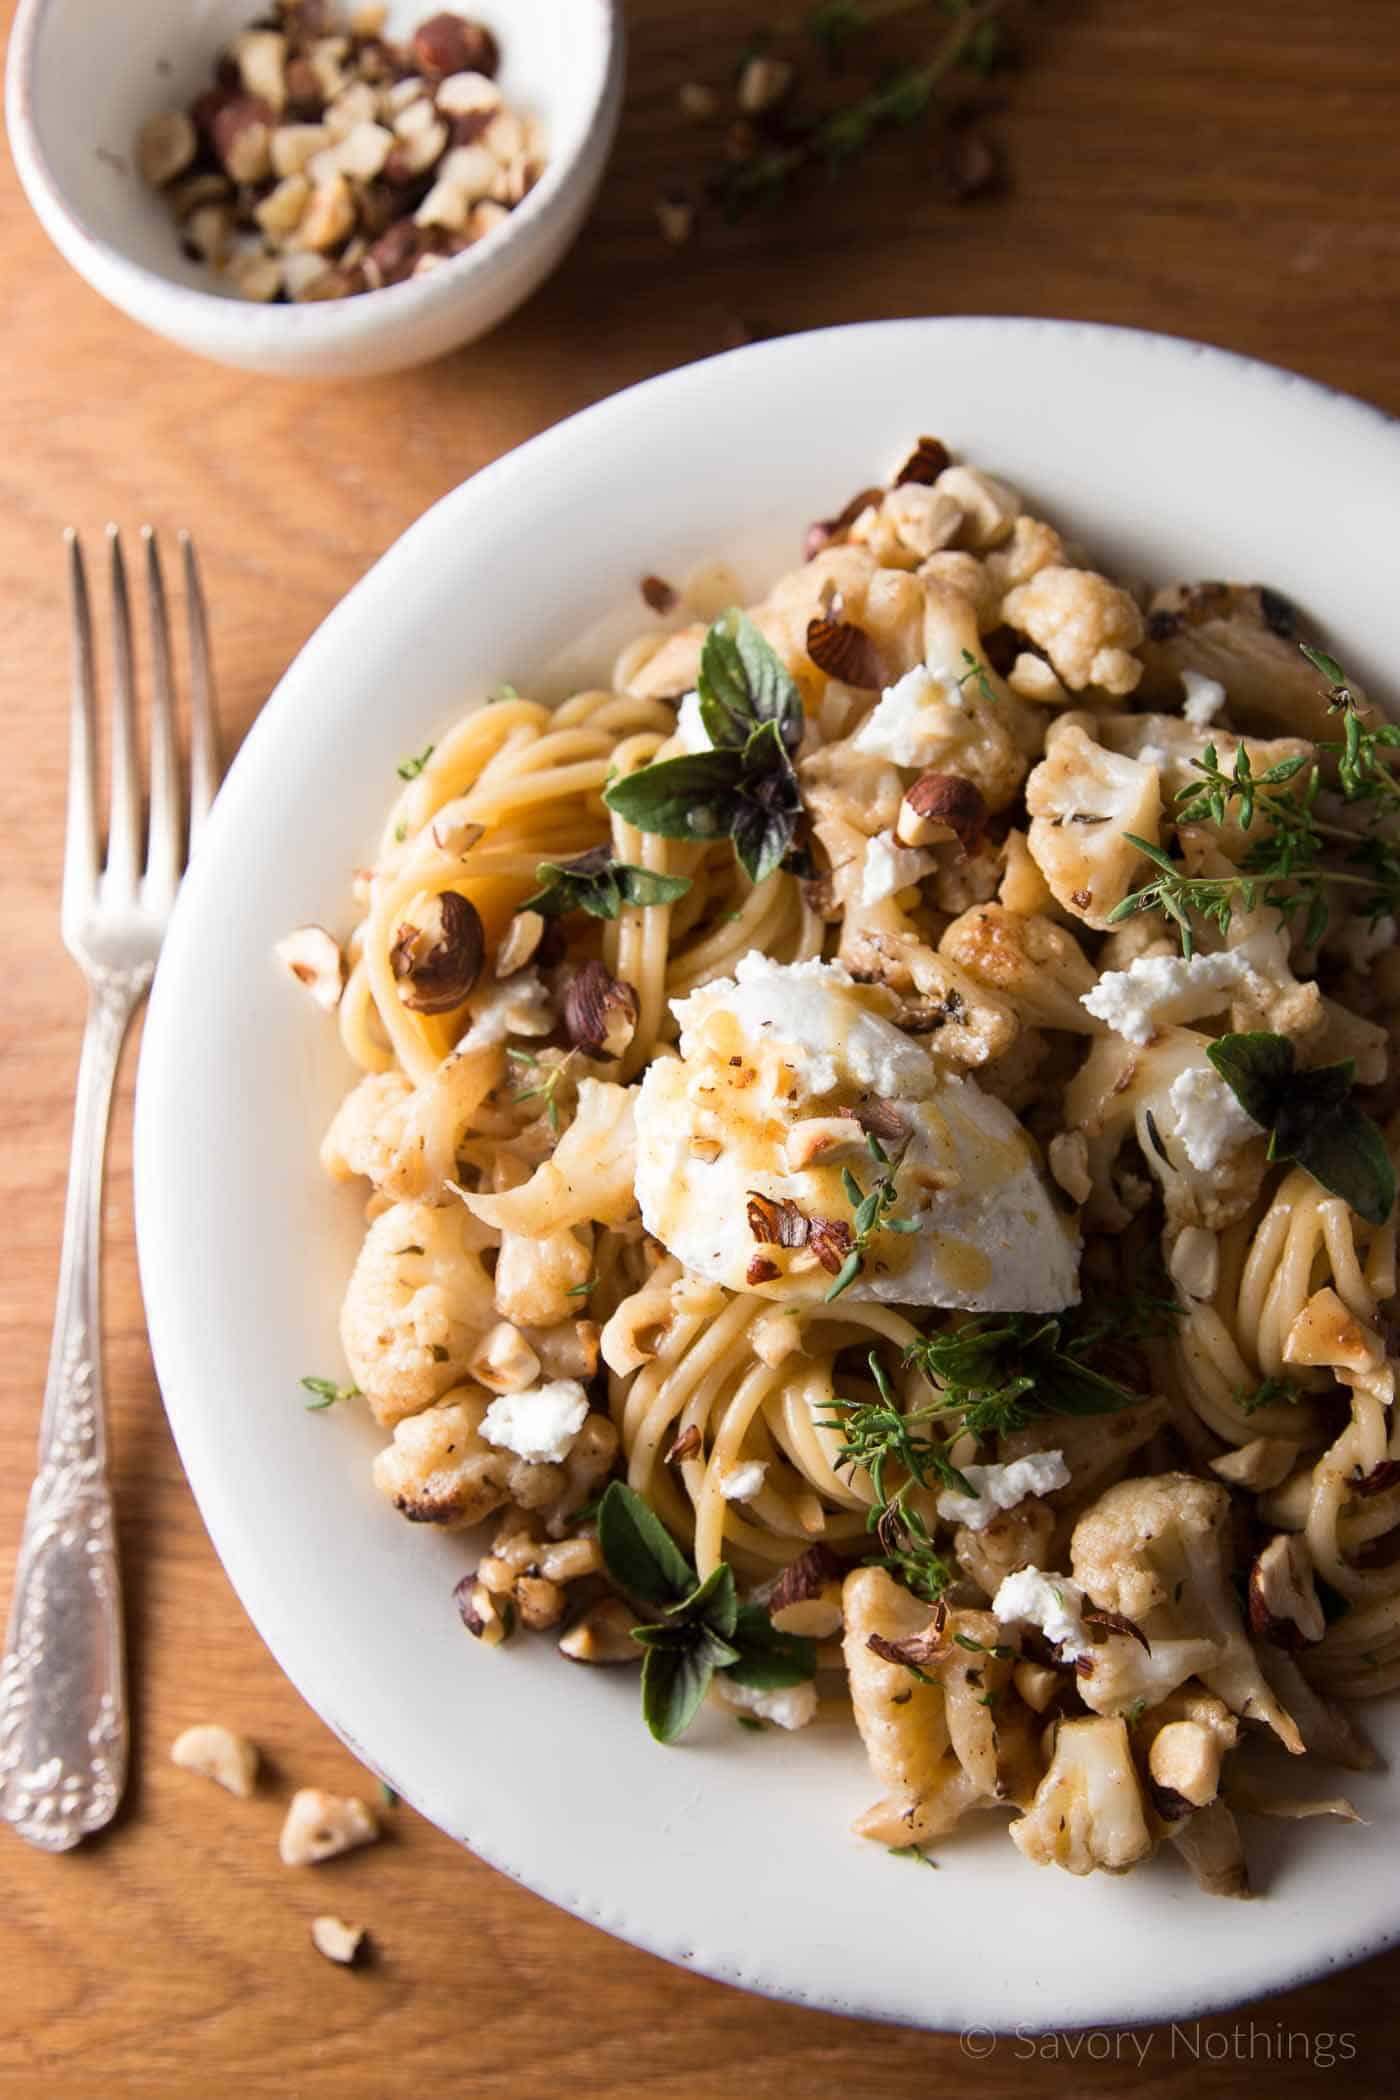 Roasted Cauliflower and Hazelnut Spaghetti Recipe - Decadent with roasted hazelnuts and browned butter, this quick dinner comes together in just 30 minutes. | savorynothings.com